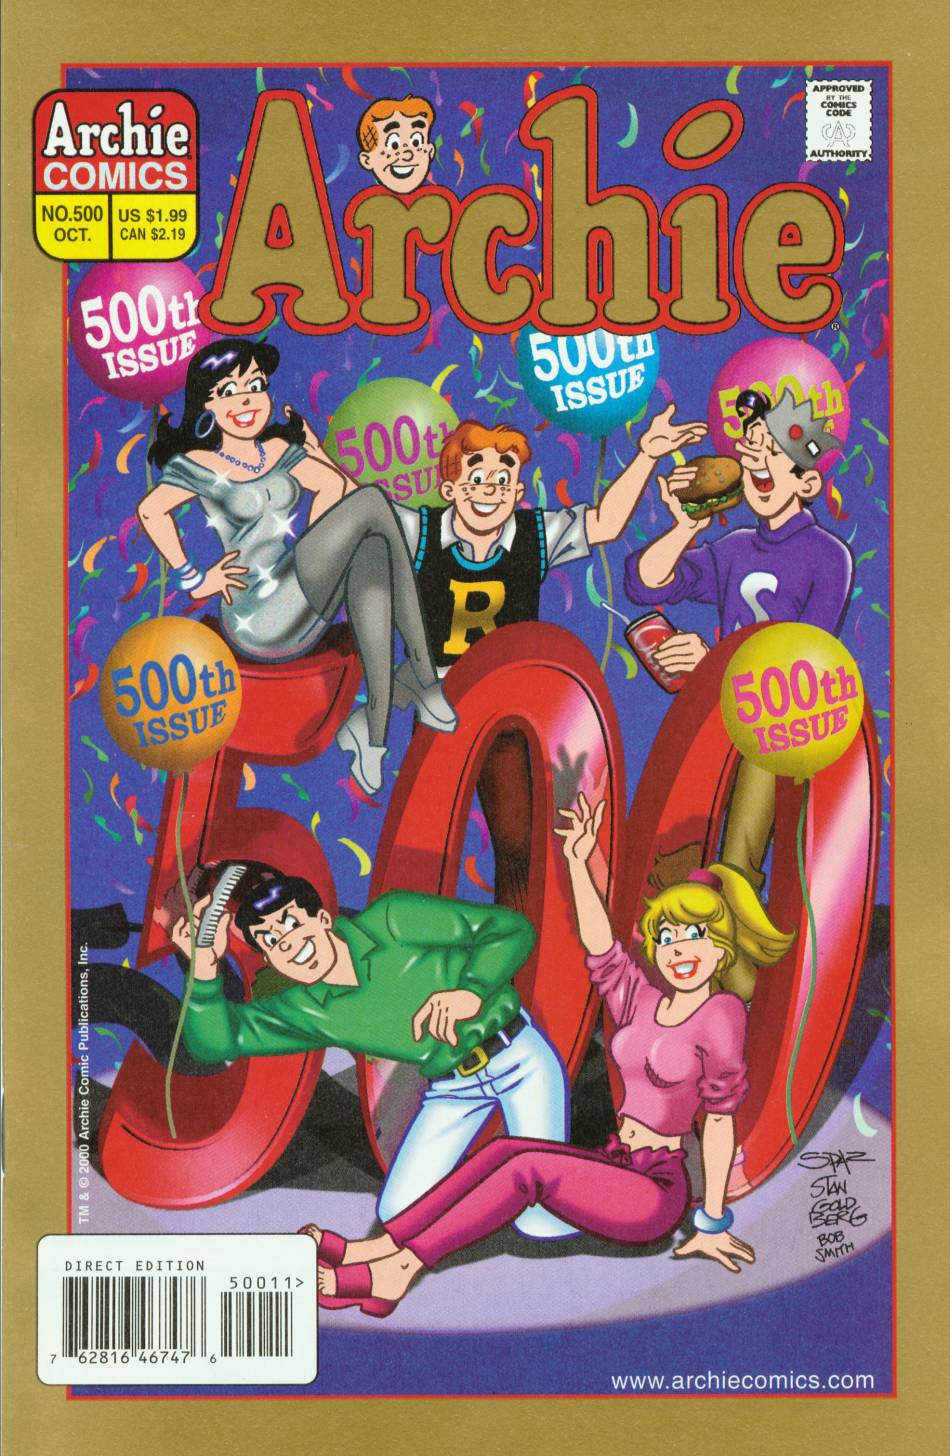 Archie (1960) #500, cover penciled by Stan Goldberg & inked by Bob Smith.